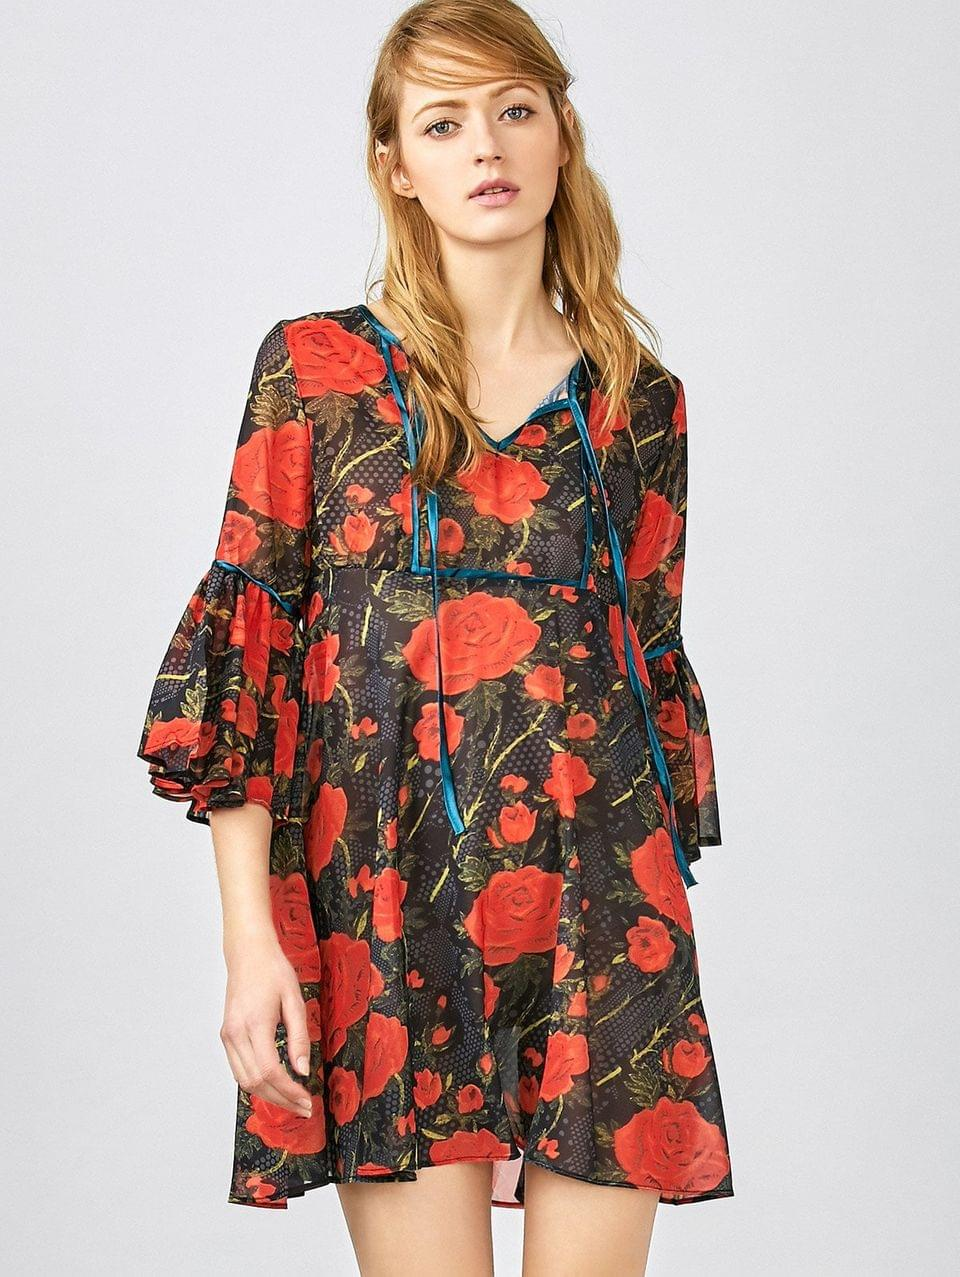 Women's Red Floral 3/4 Sleeve Blouse - Red Xs